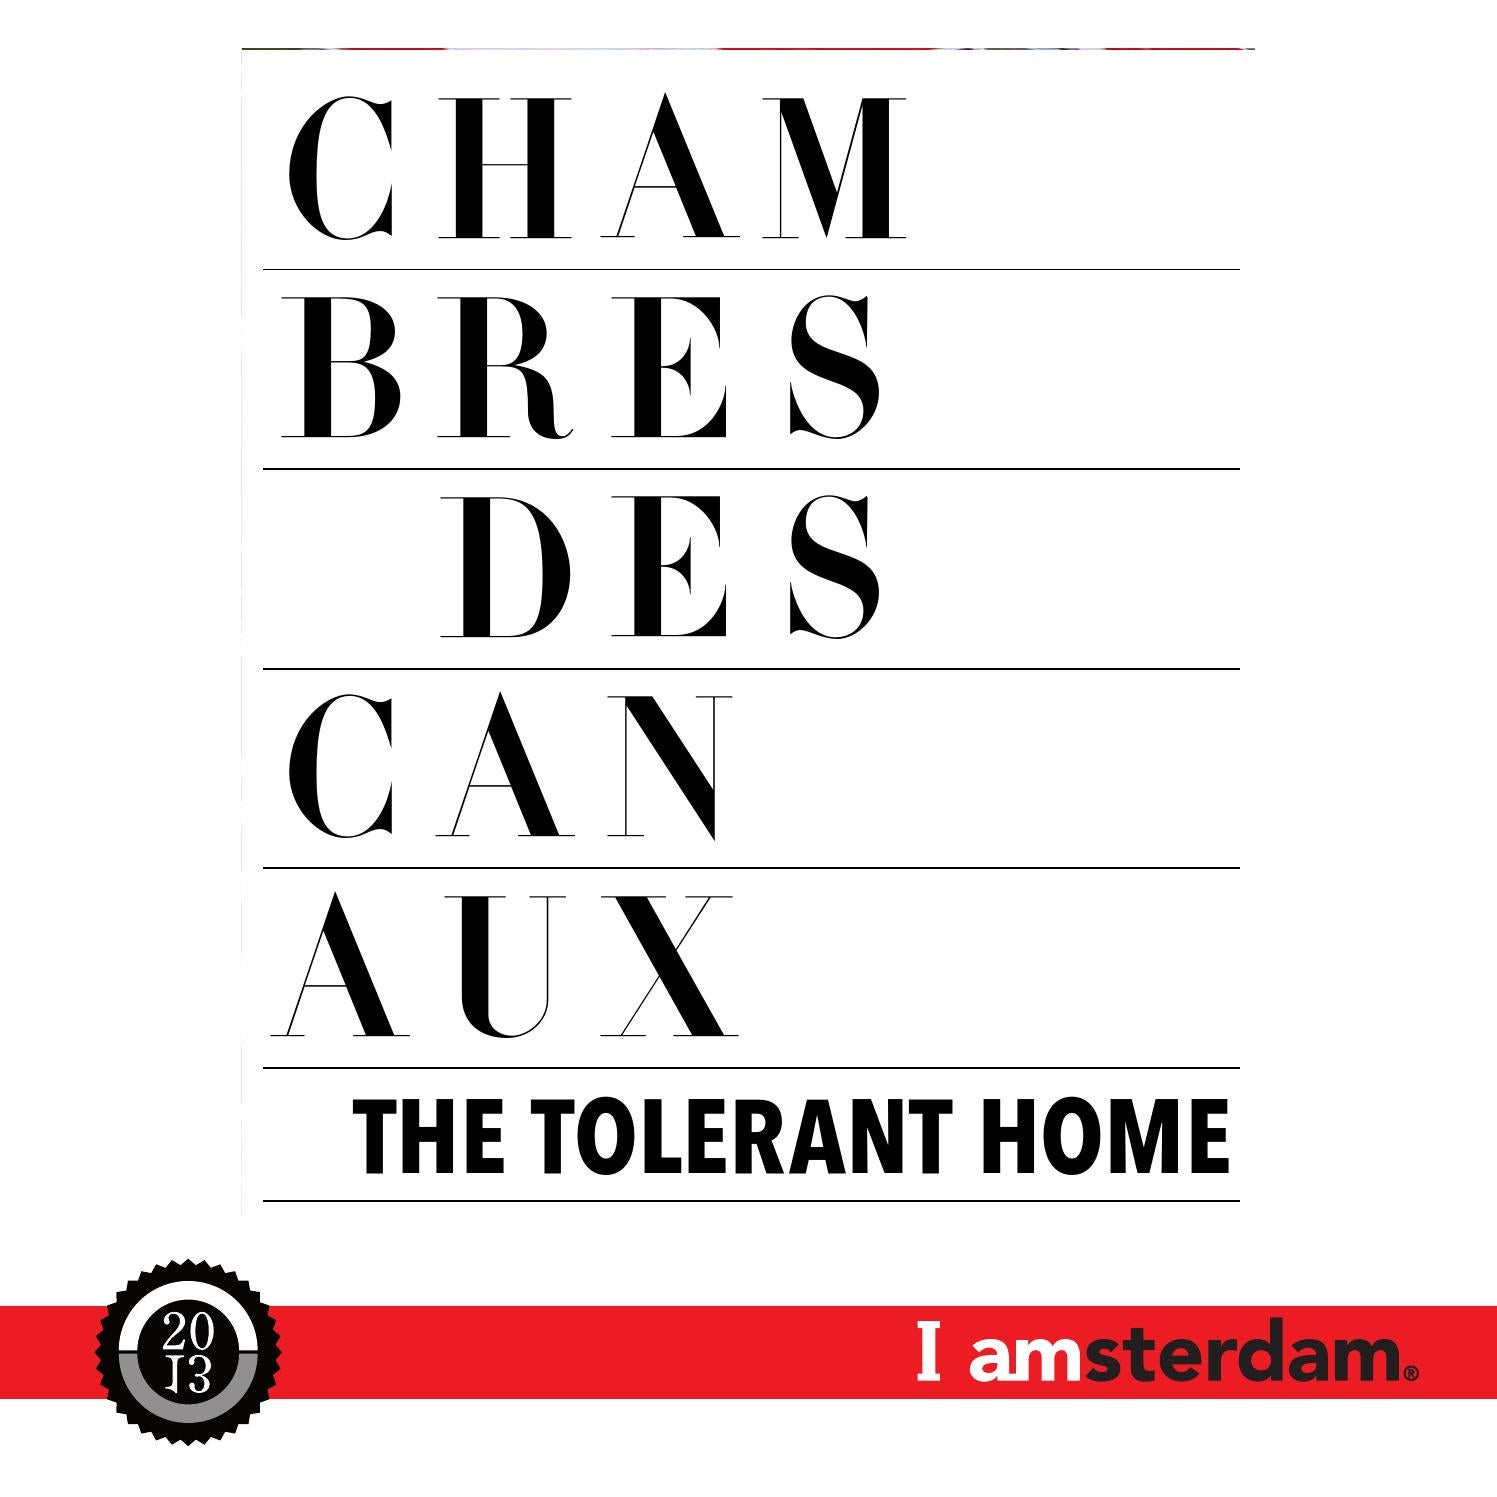 Chambres Des Canaux The Tolerant Home By Amsterdampartners